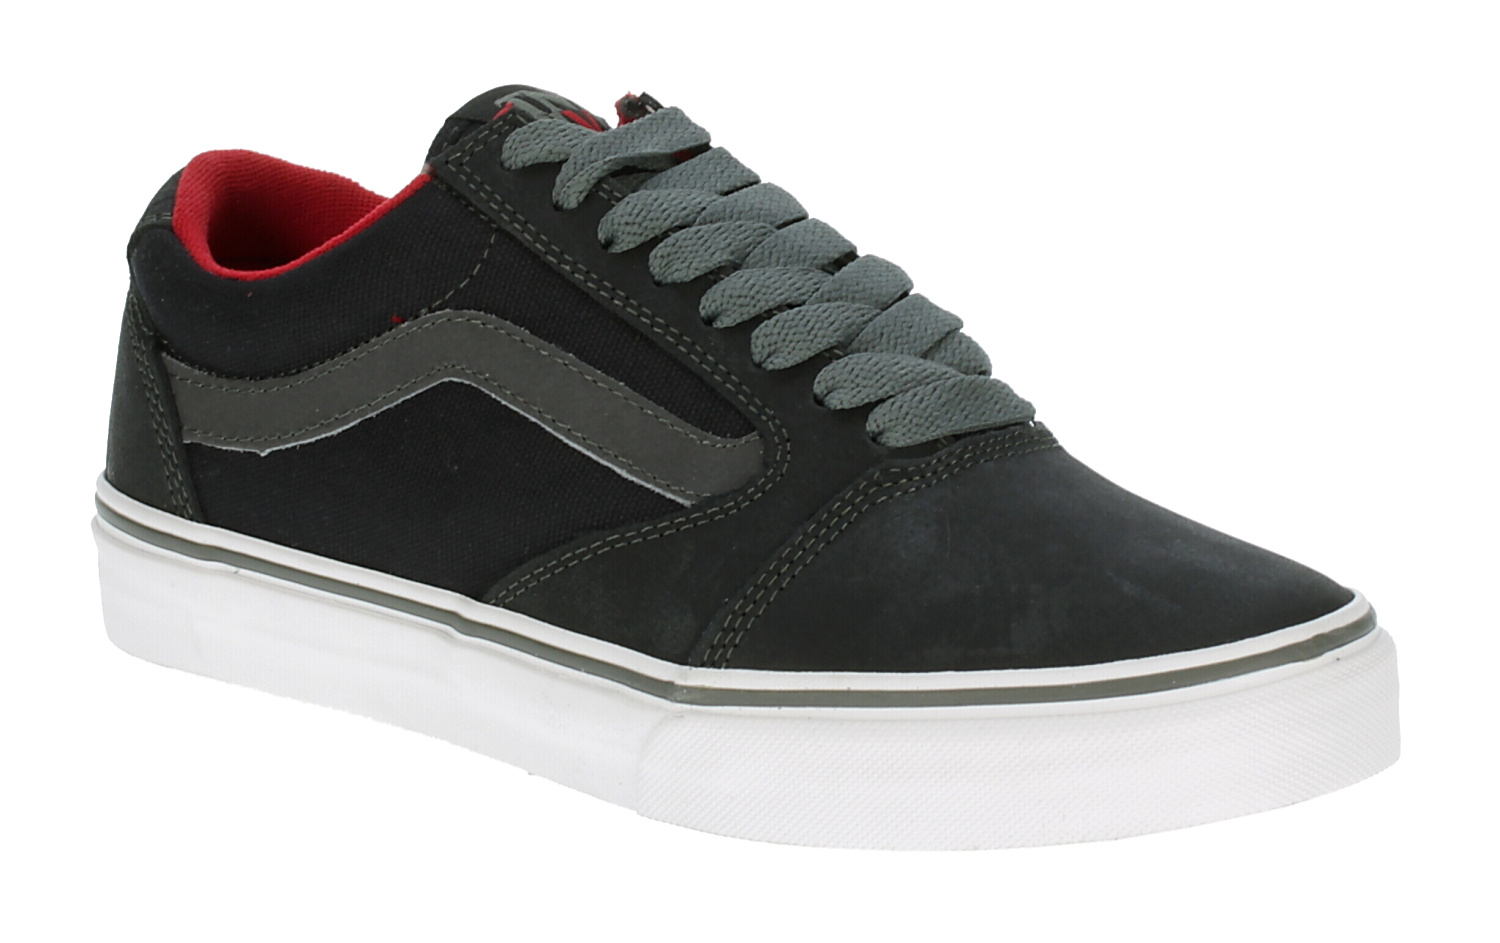 ee9bf9e6e32a50 shoes Vans TNT 5 - Black Charcoal Scarlet - Snowboard shop ...